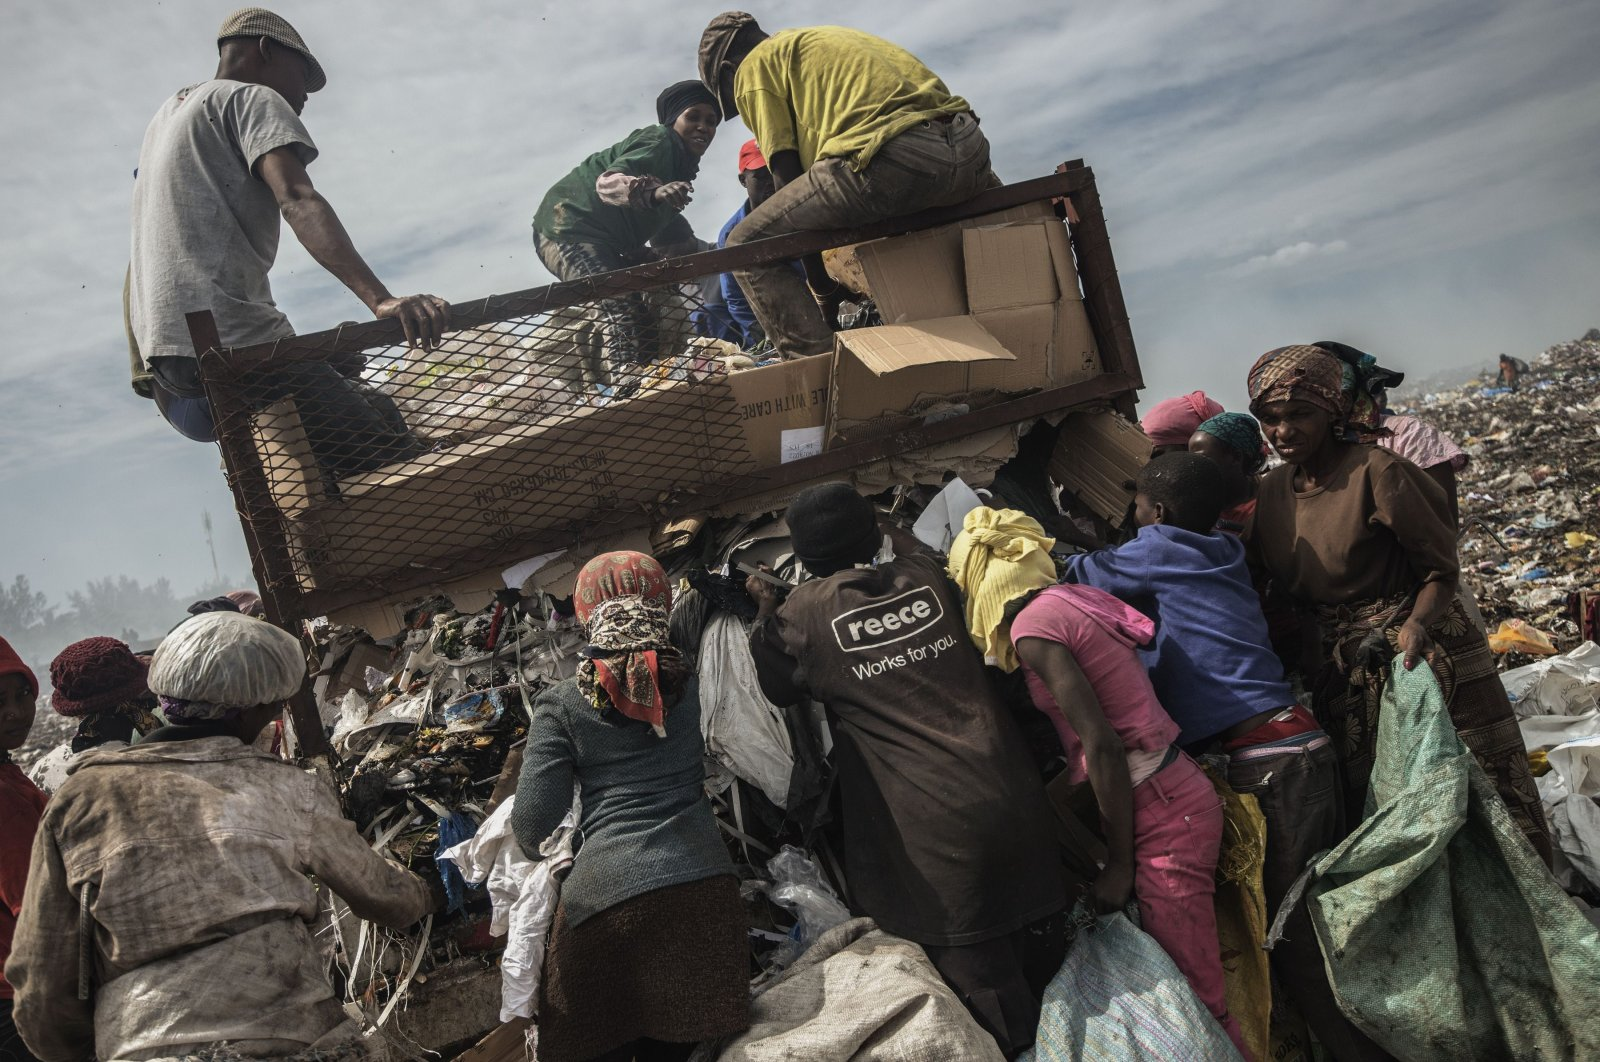 People sift through garbage at the Maputo municipal garbage dump site in Maputo, Mozambique, Oct. 14, 2014. (AFP Photo)